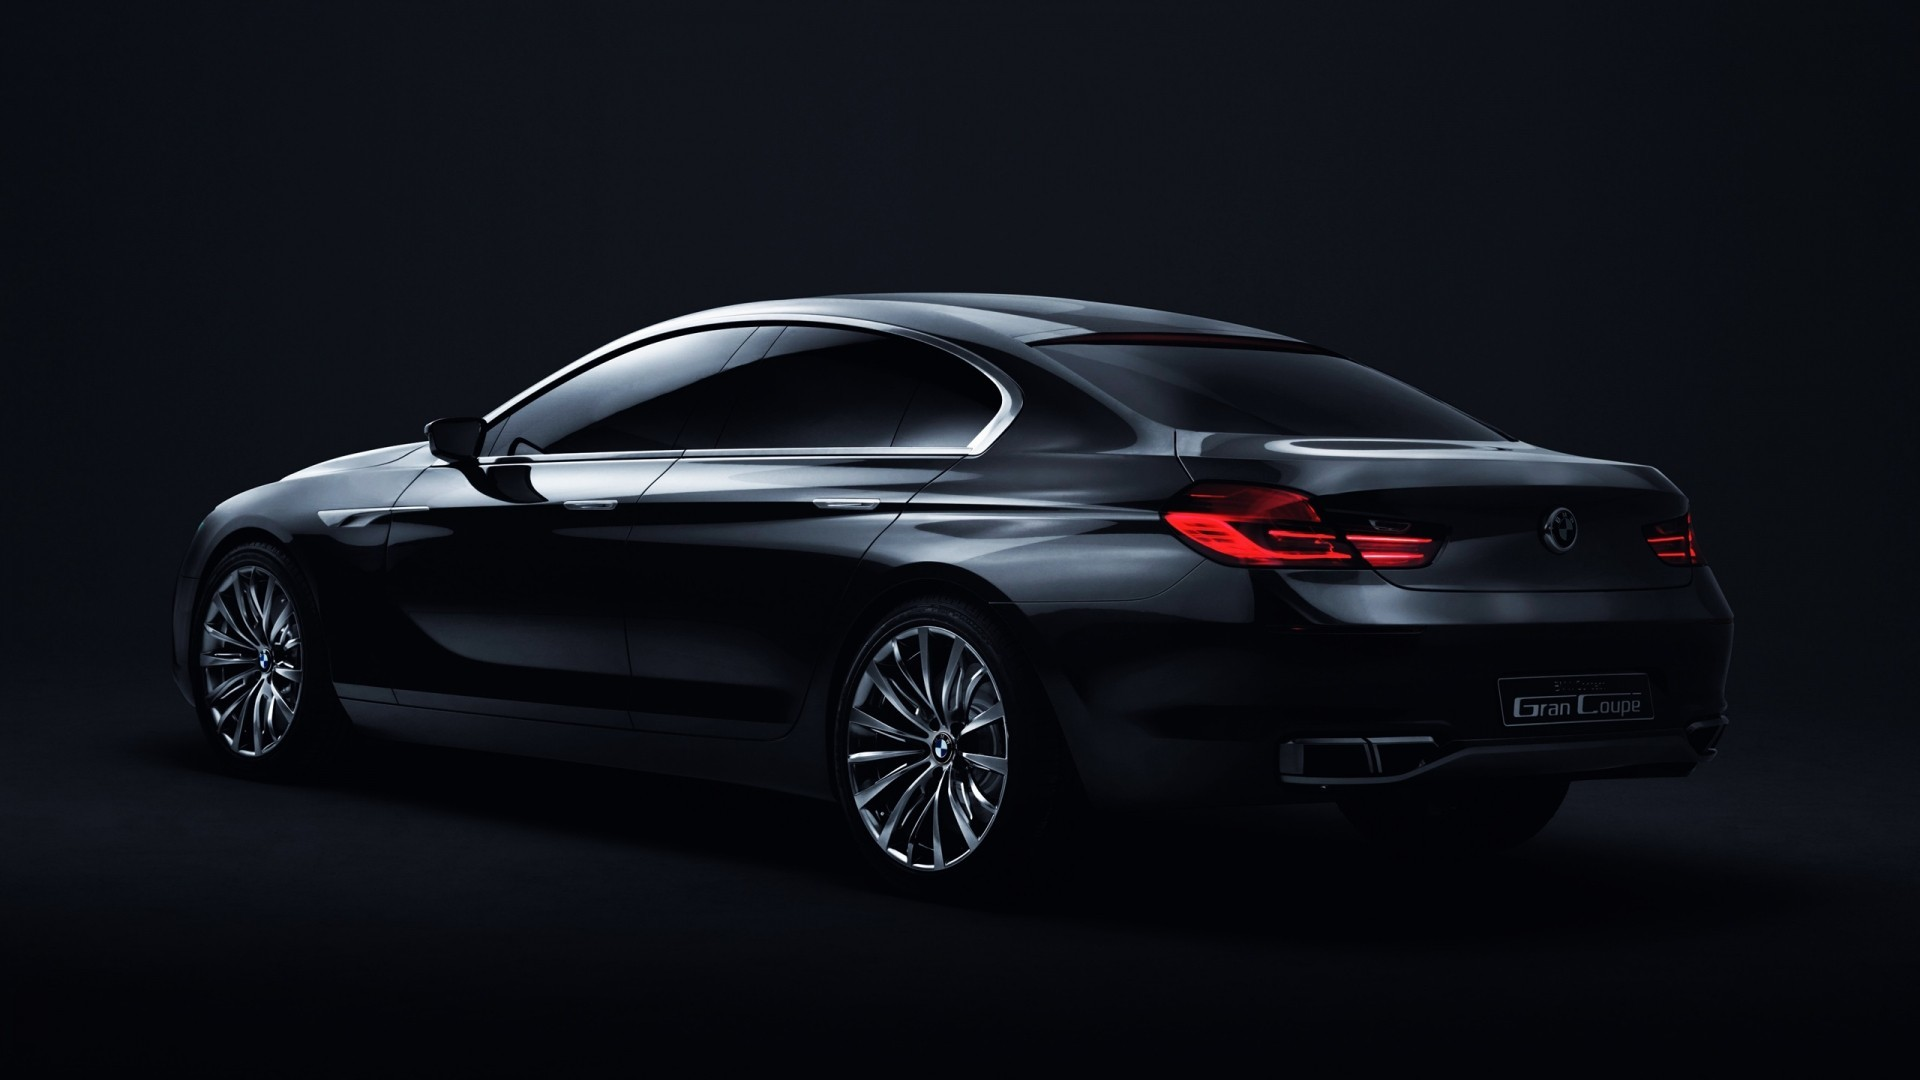 cars BMW Gran Coupe HD Wallpaper